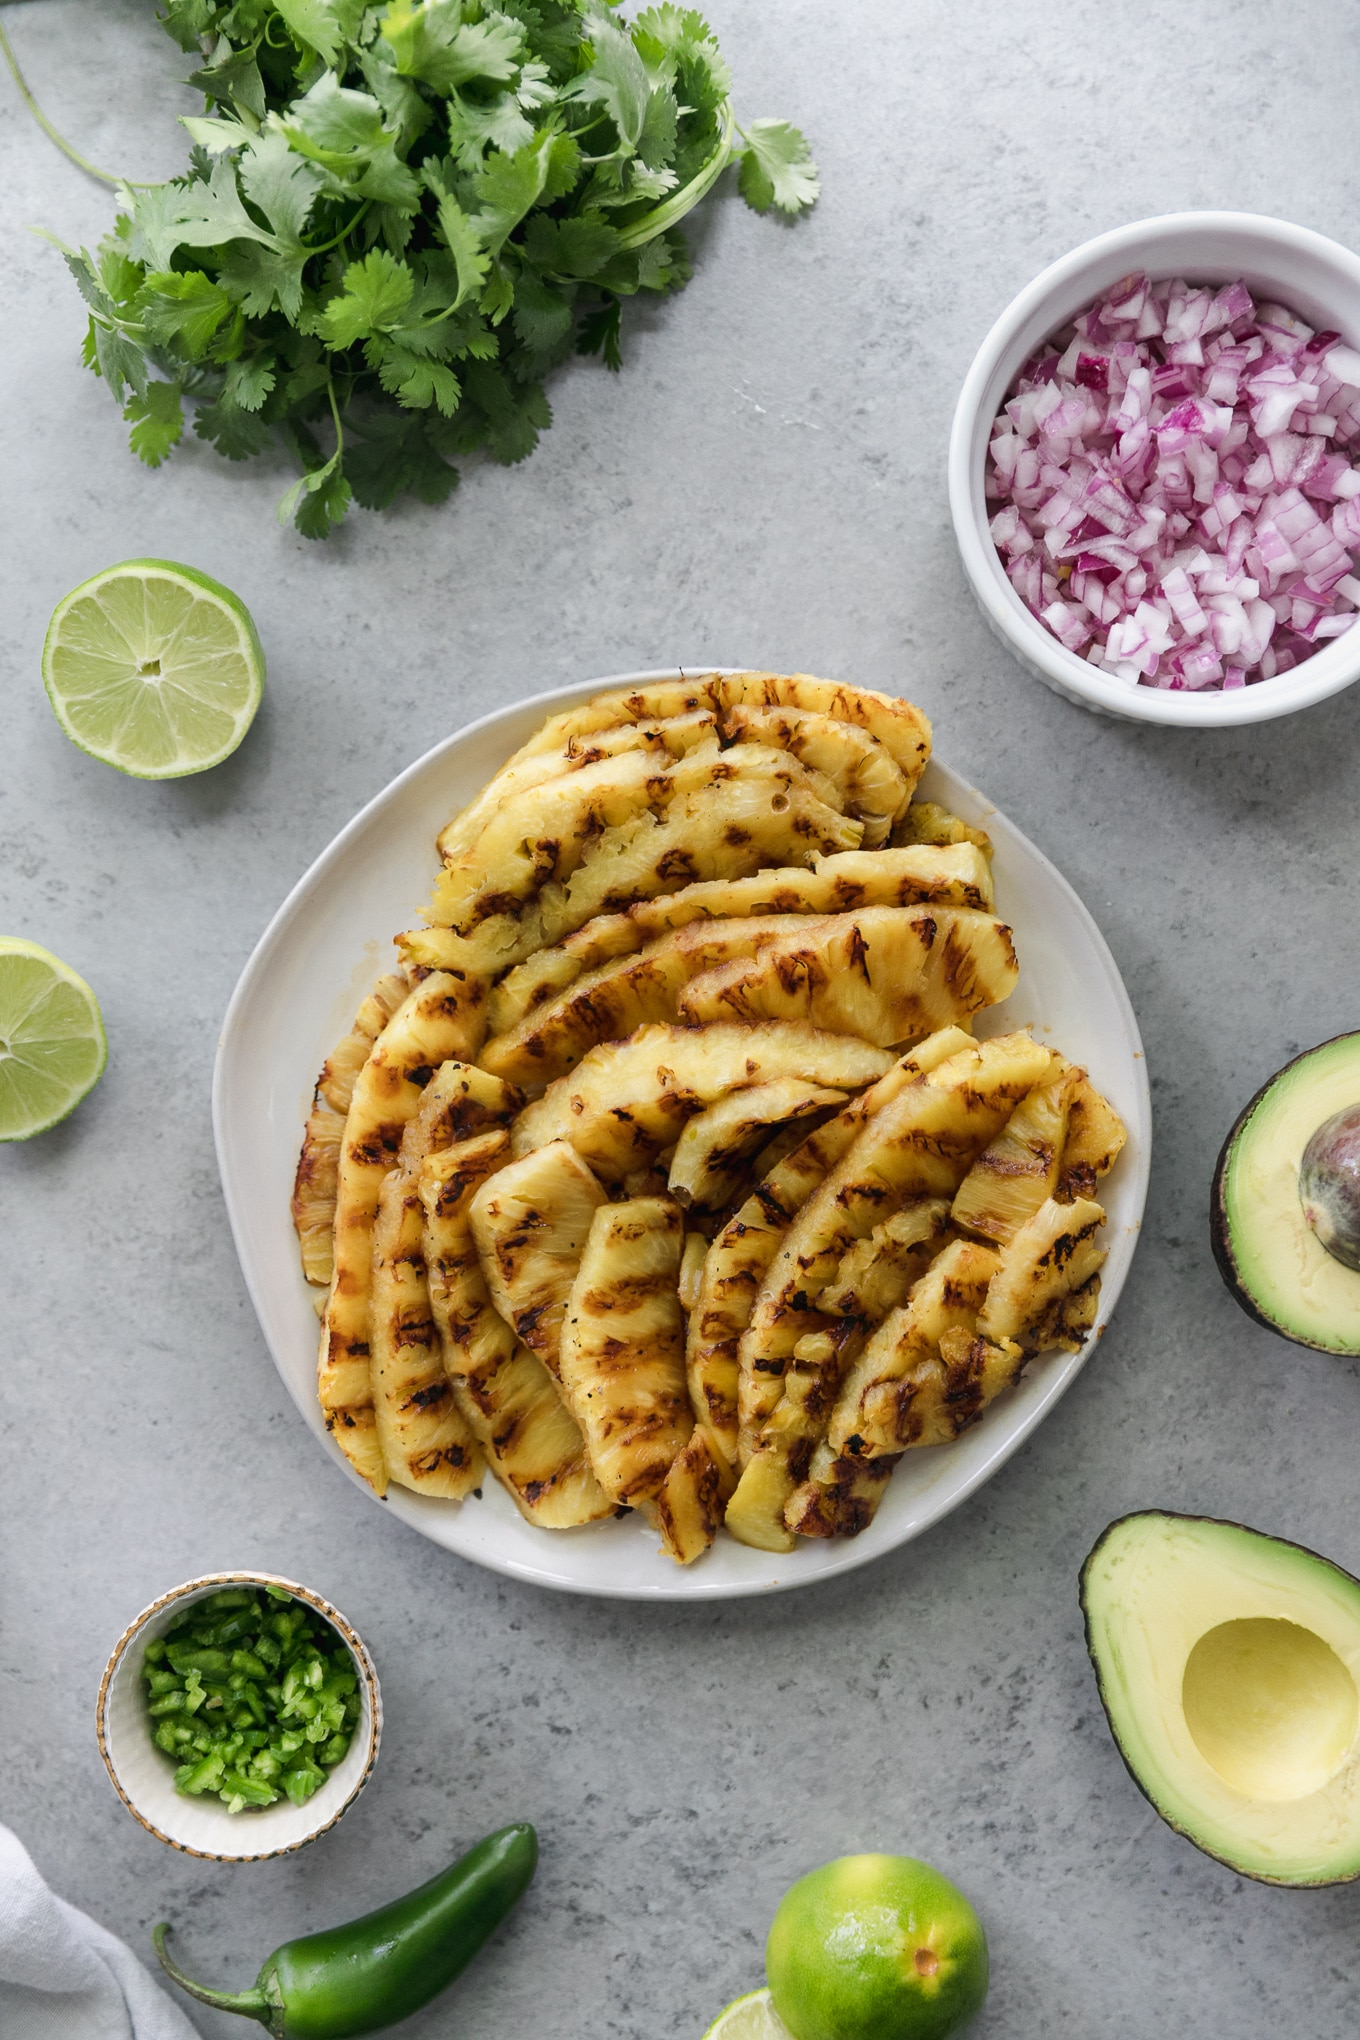 Over head shot of a plate of grilled pineapple spears, surrounded by a halved avocado, a bowl of chopped jalapeño, a bunch of cilantro, and a bowl of diced red onion